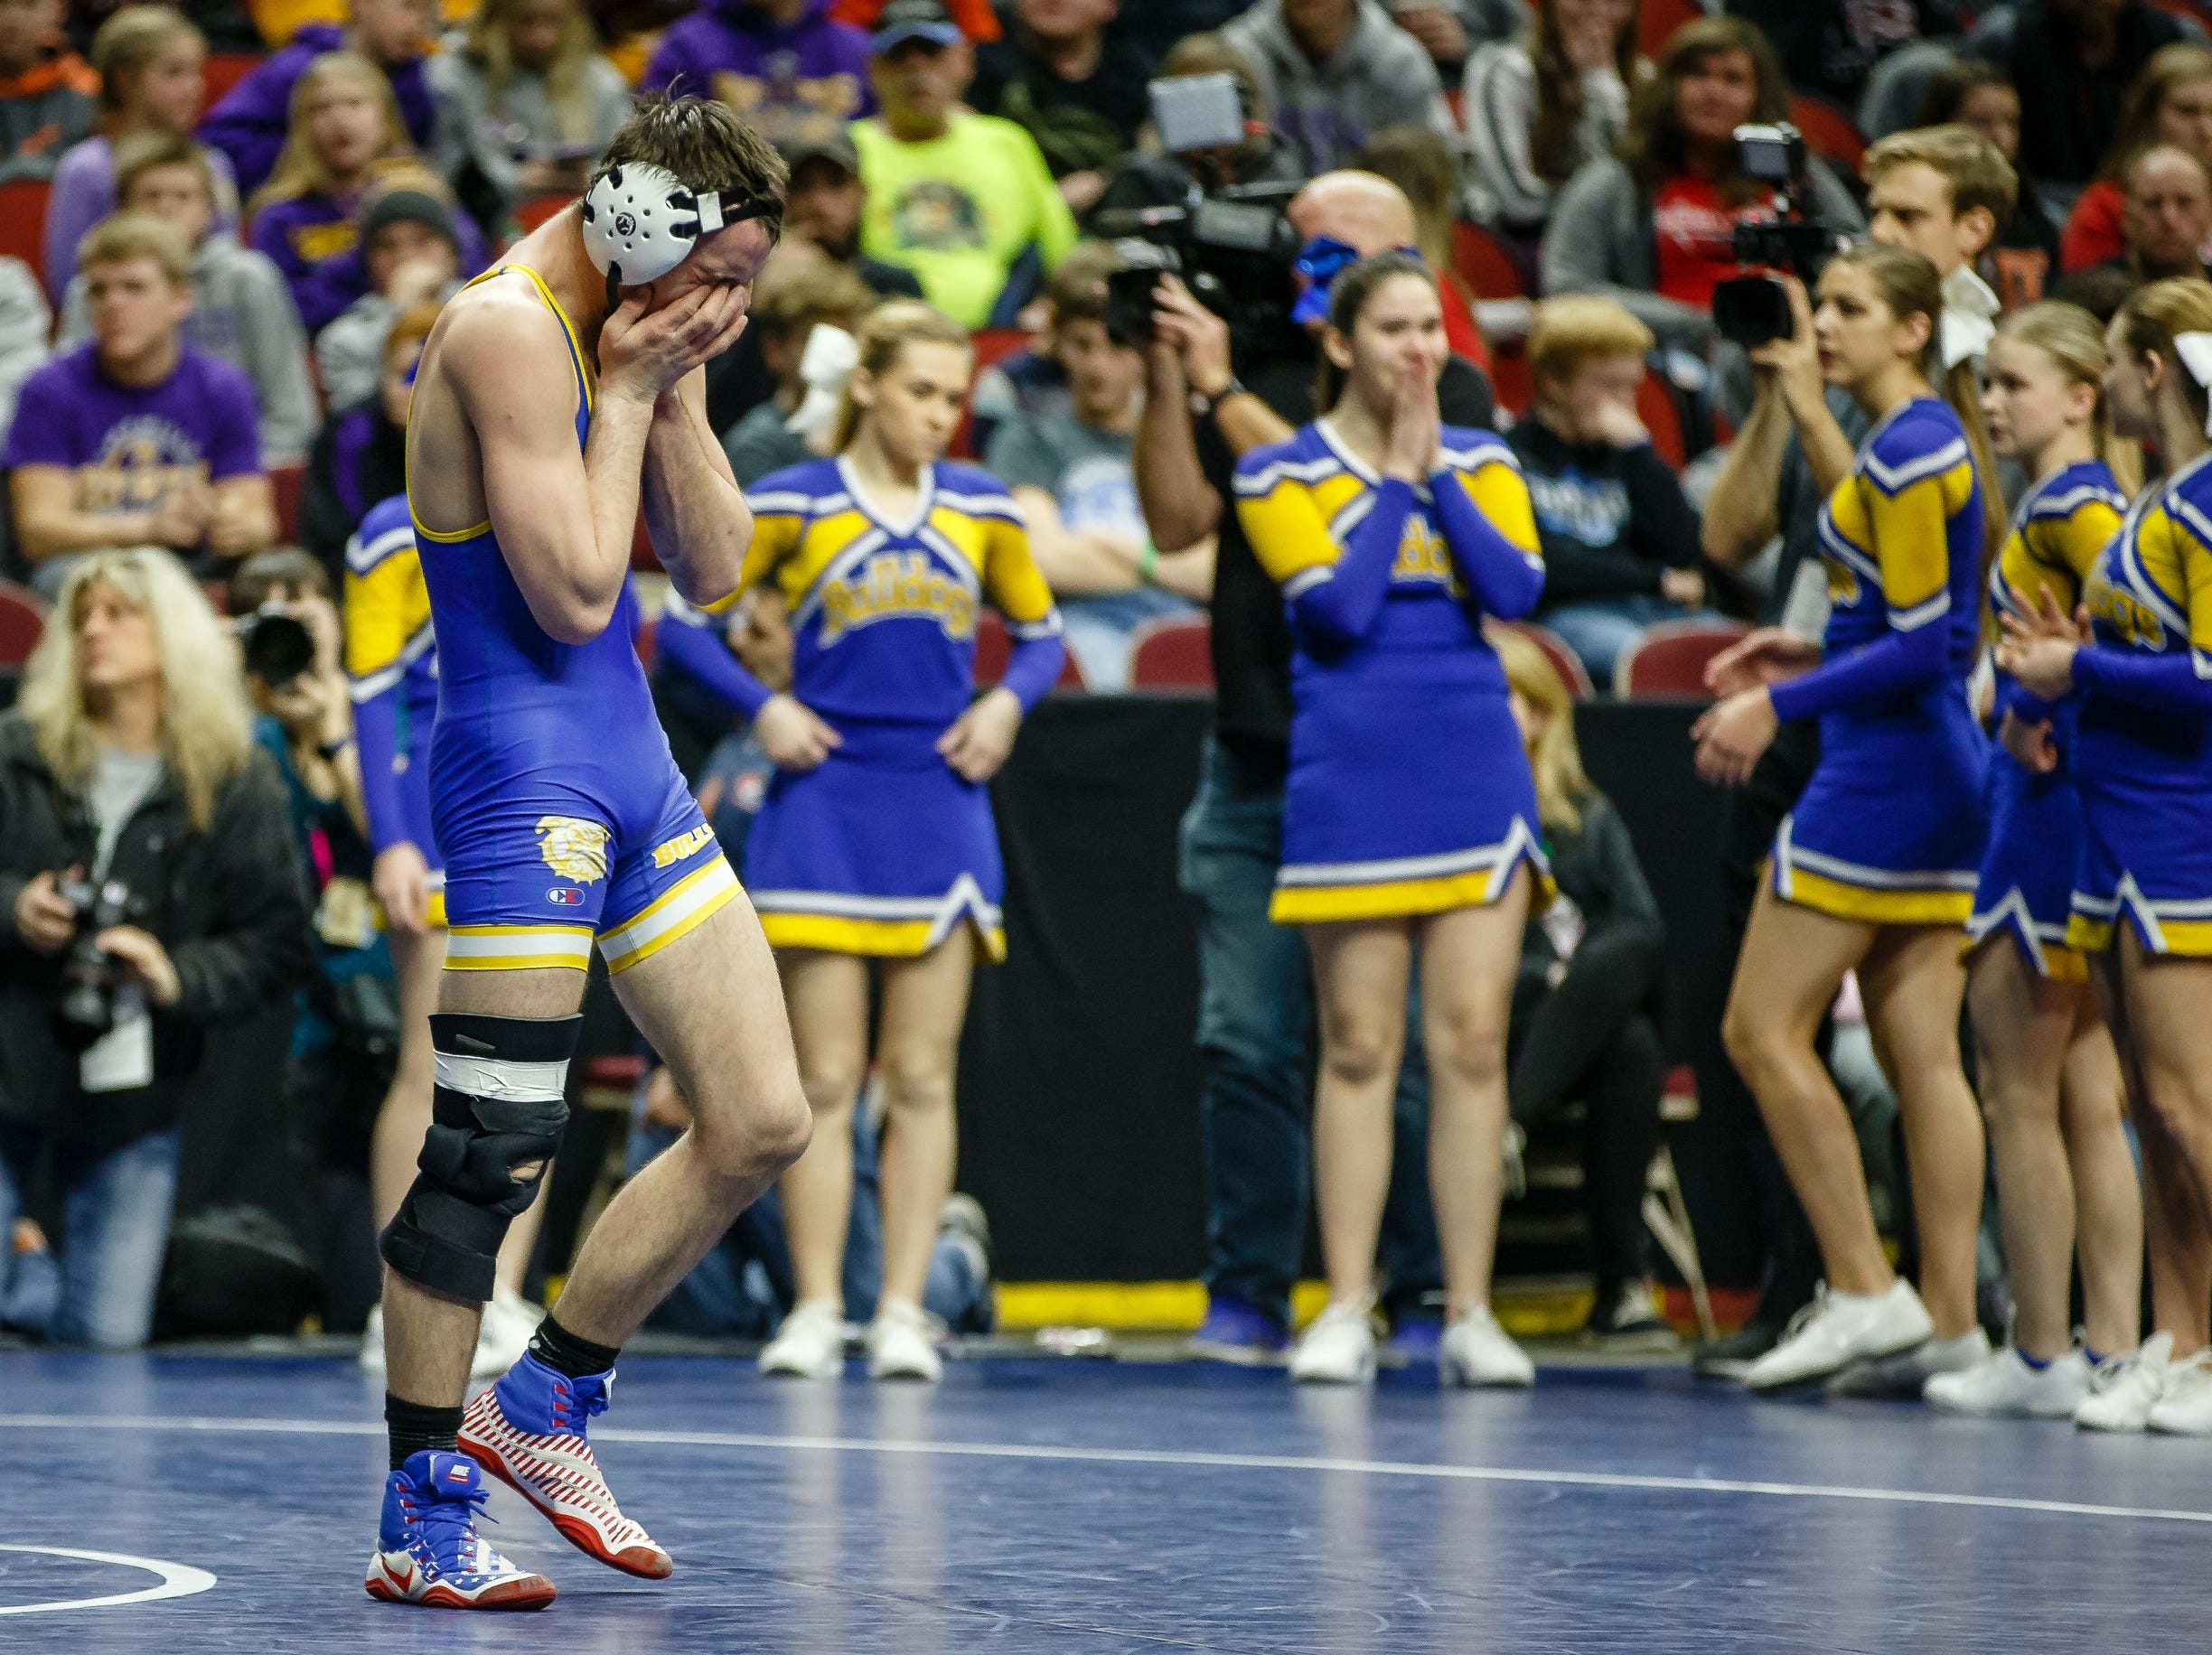 Michael Egan of MFL, MarMac reacts after loosing to Wade Mitchell of Woodbury Central during their class 1A 145 pound state championship semi-final match on Friday, Feb. 15, 2019 in Des Moines.